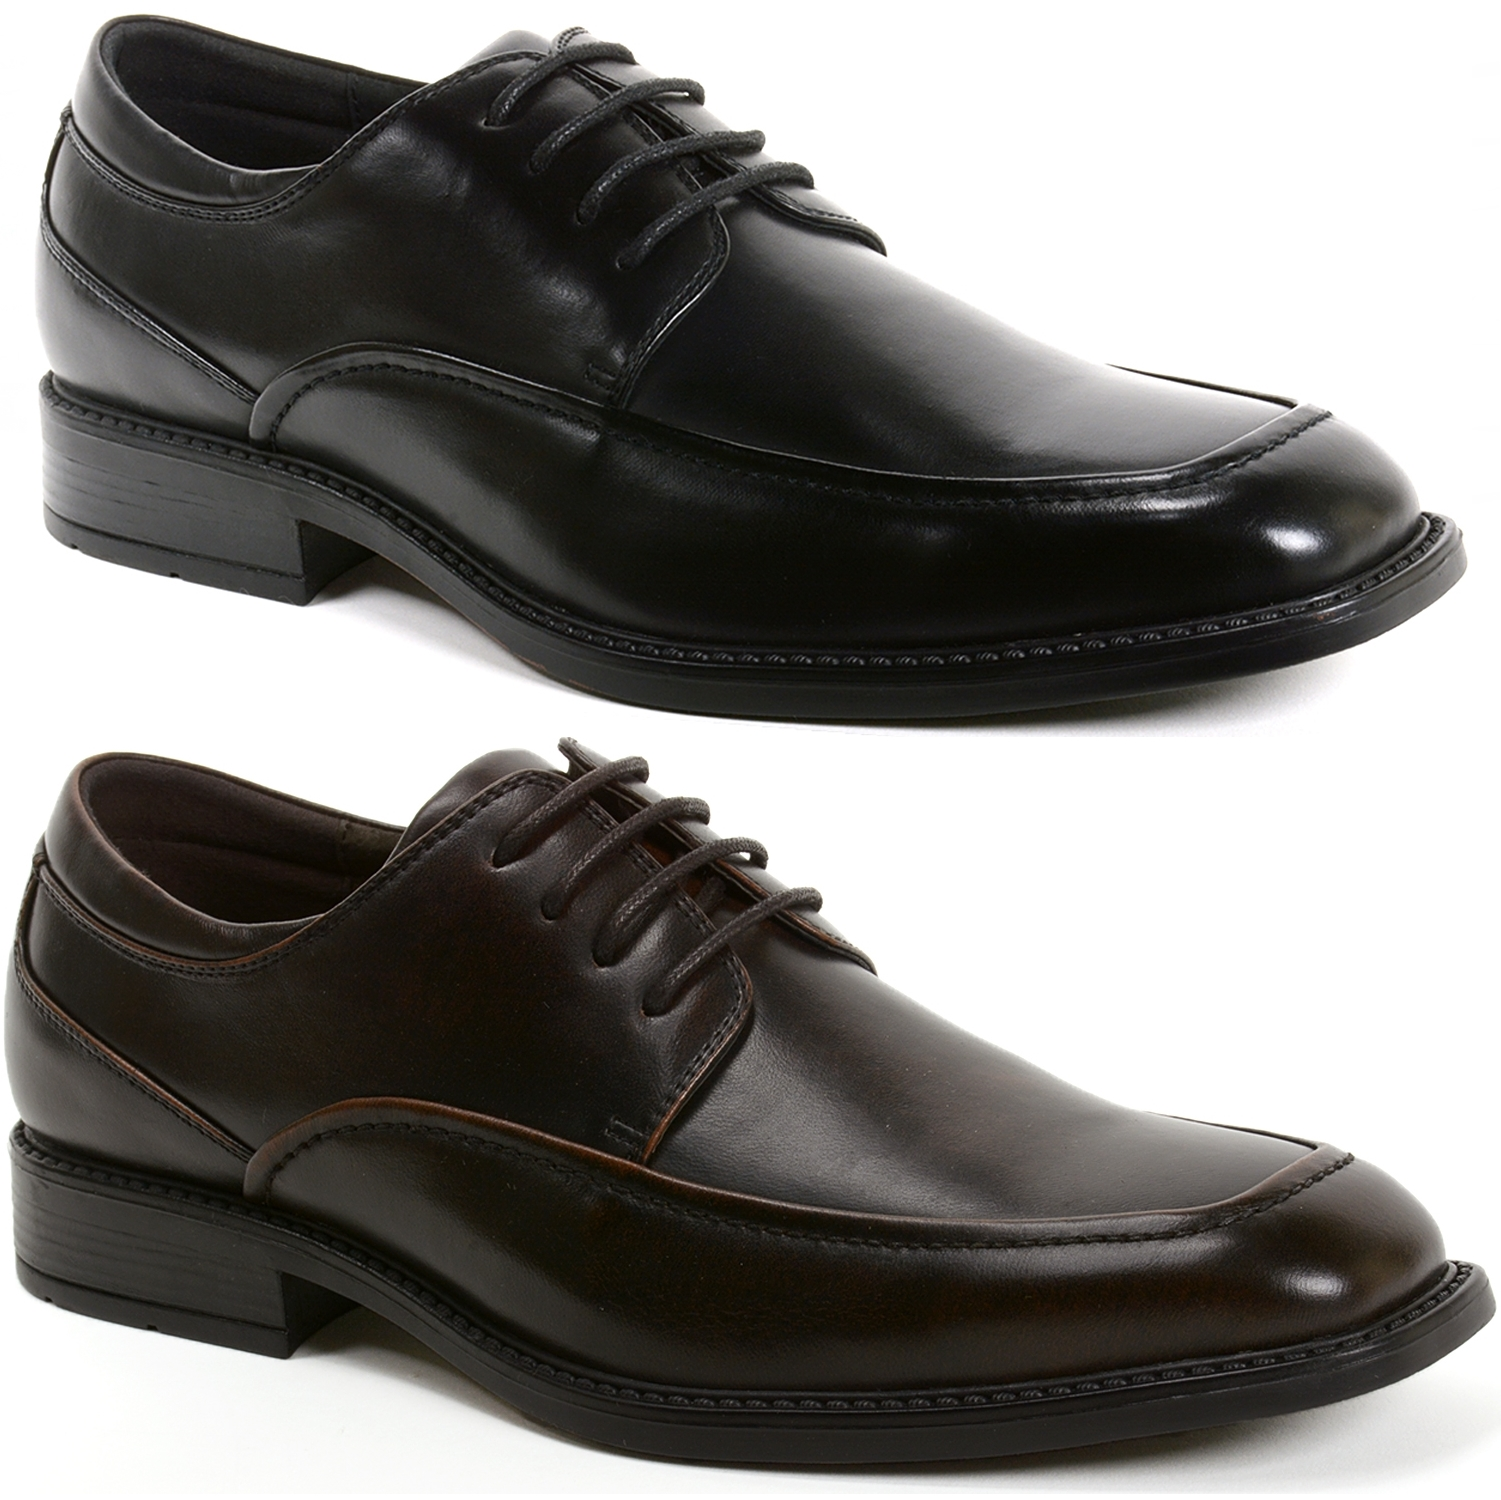 Discover the latest styles of men's dress oxfords from your favorite brands at Famous Footwear! Find your fit today!